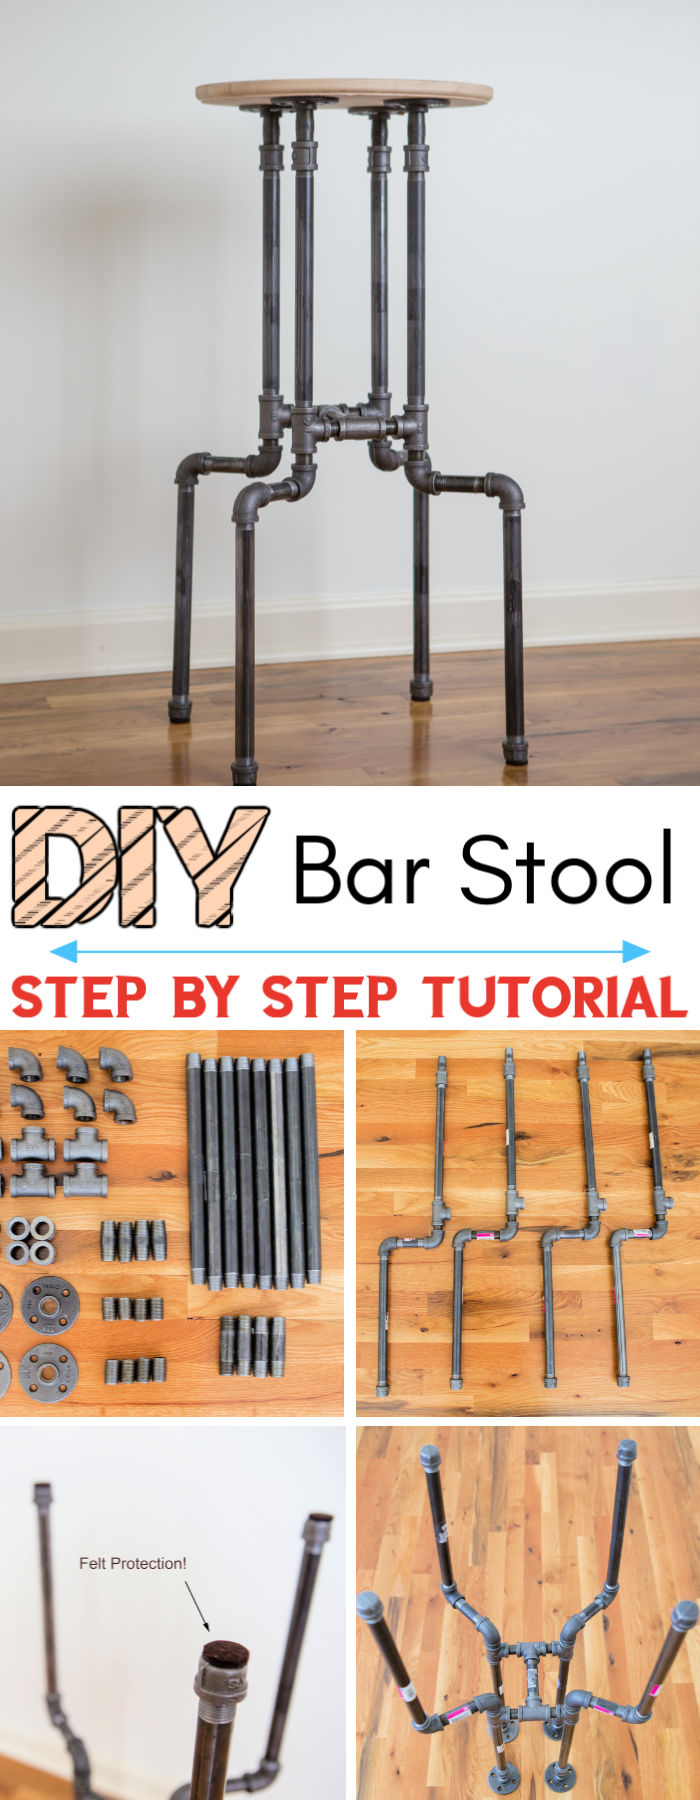 DIY Industrial Bar Stool